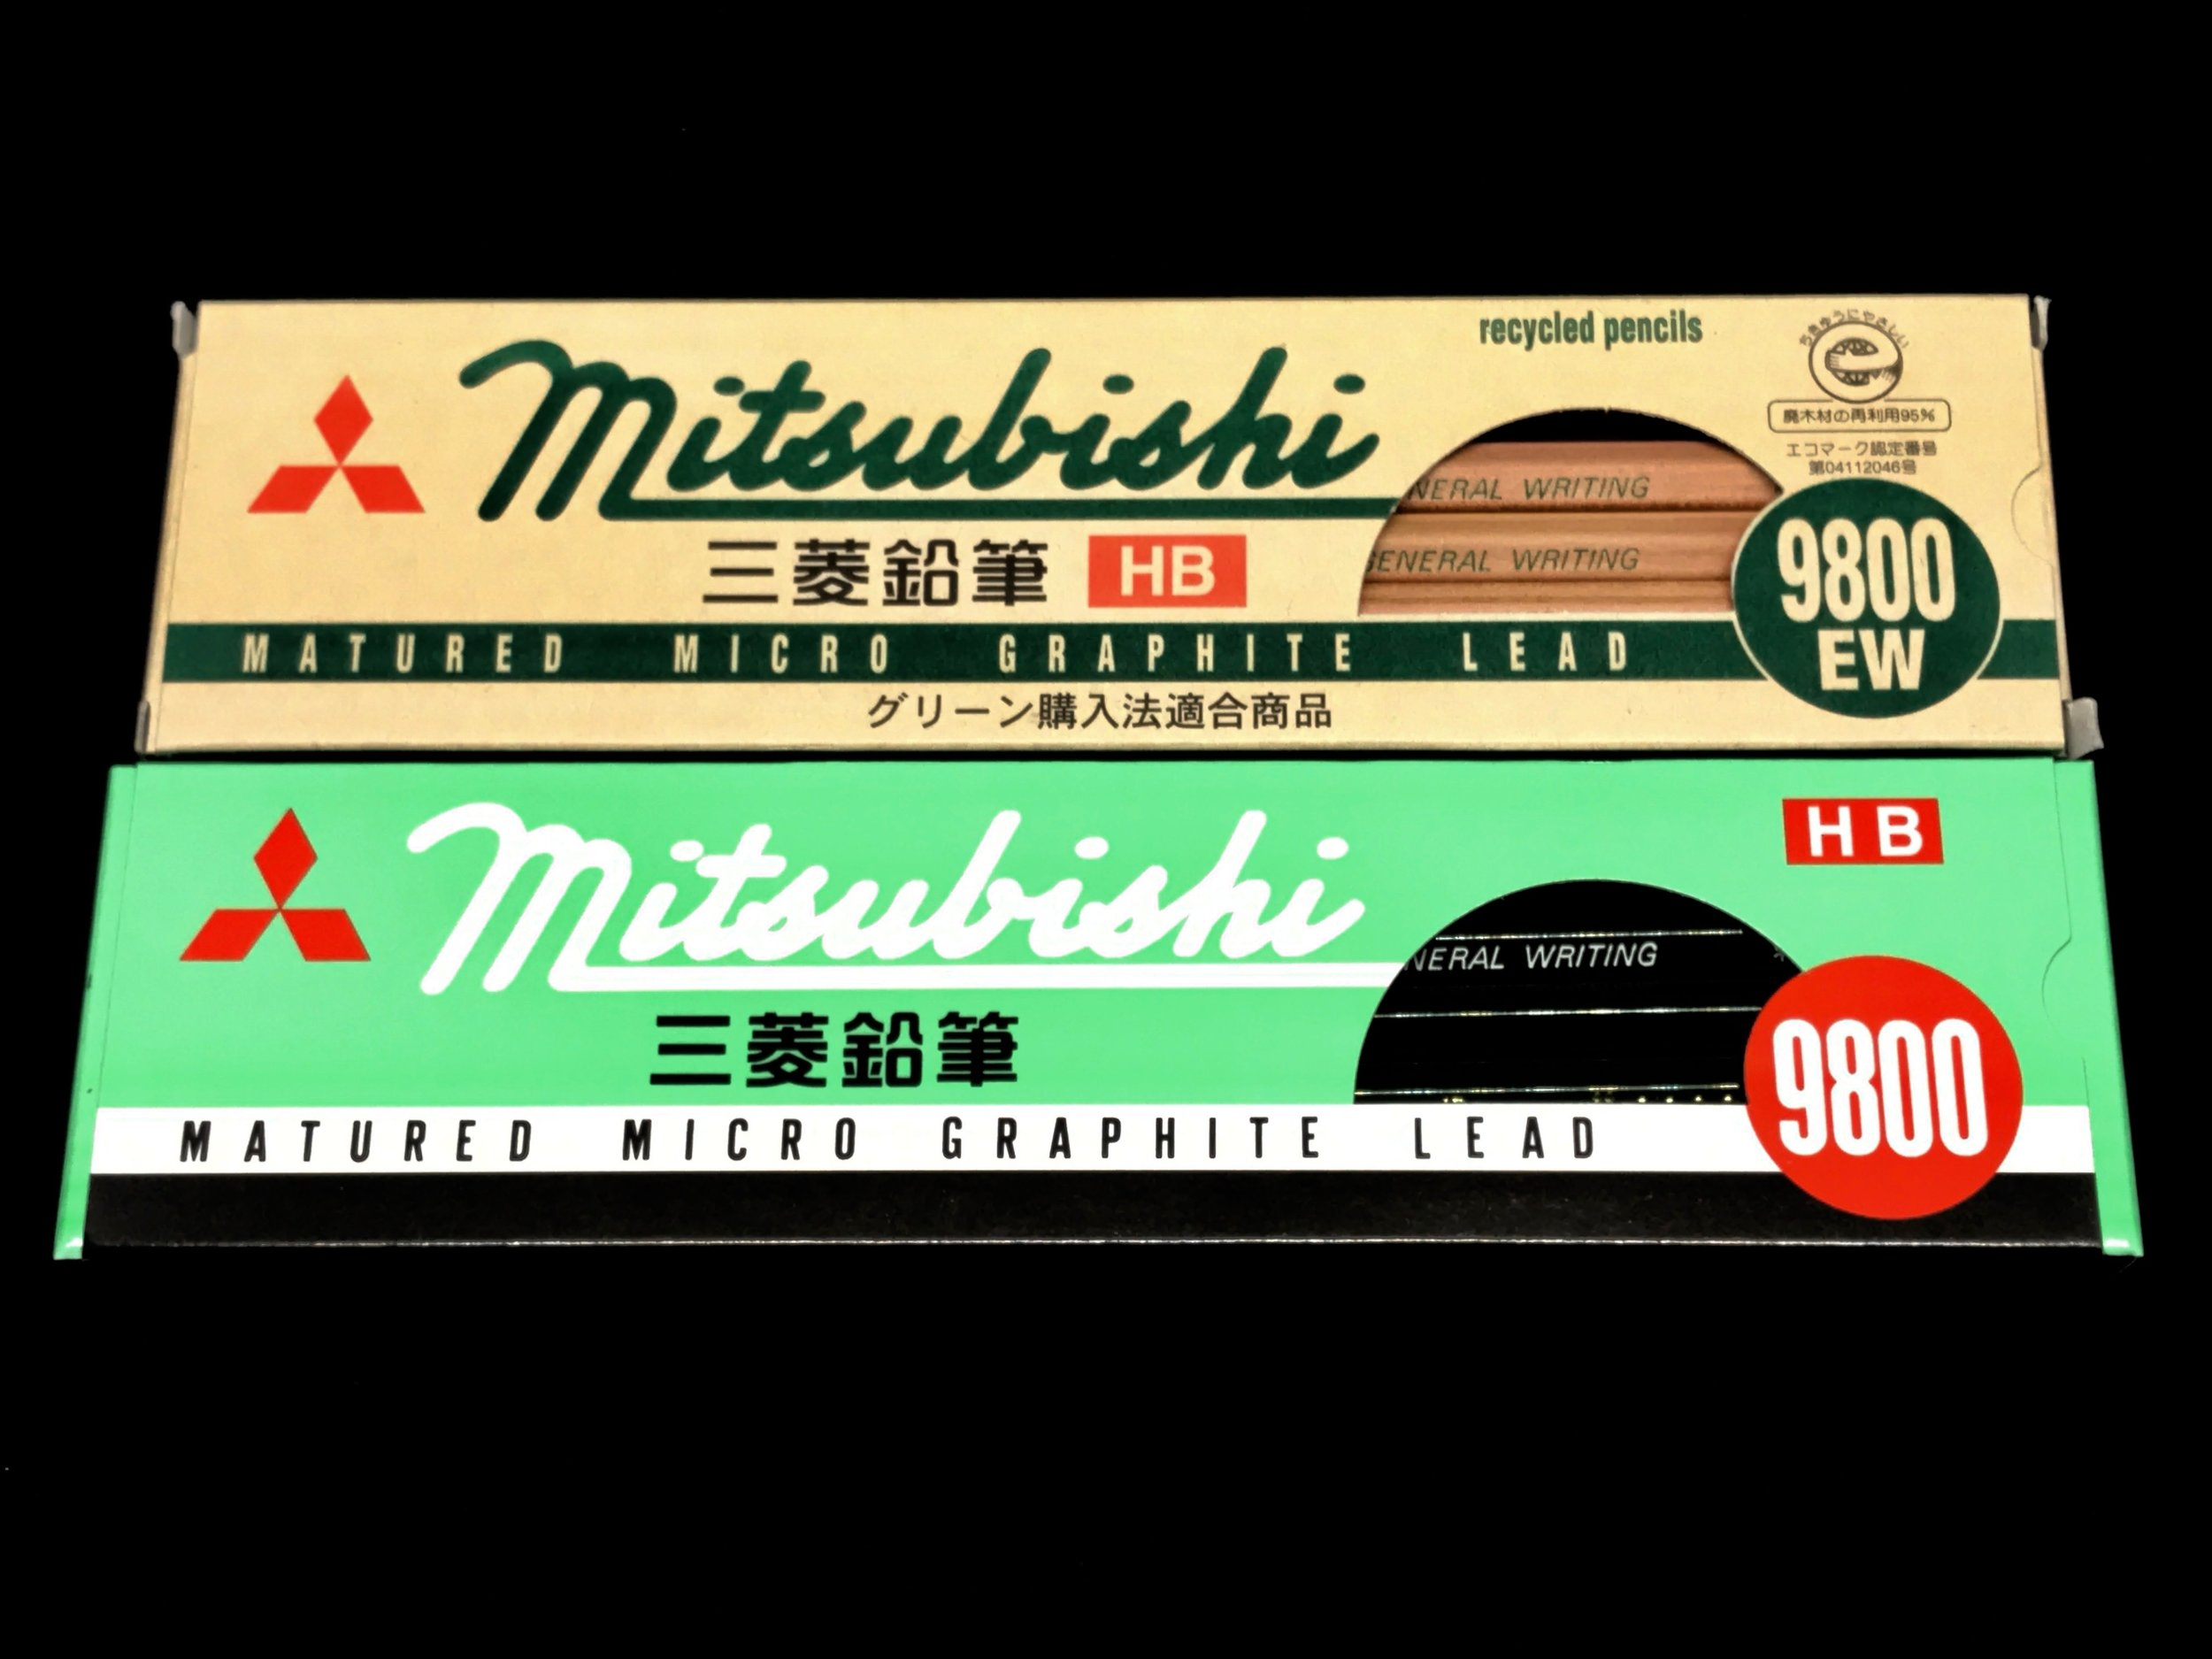 mitsubishi-9800-pencil-6.jpg